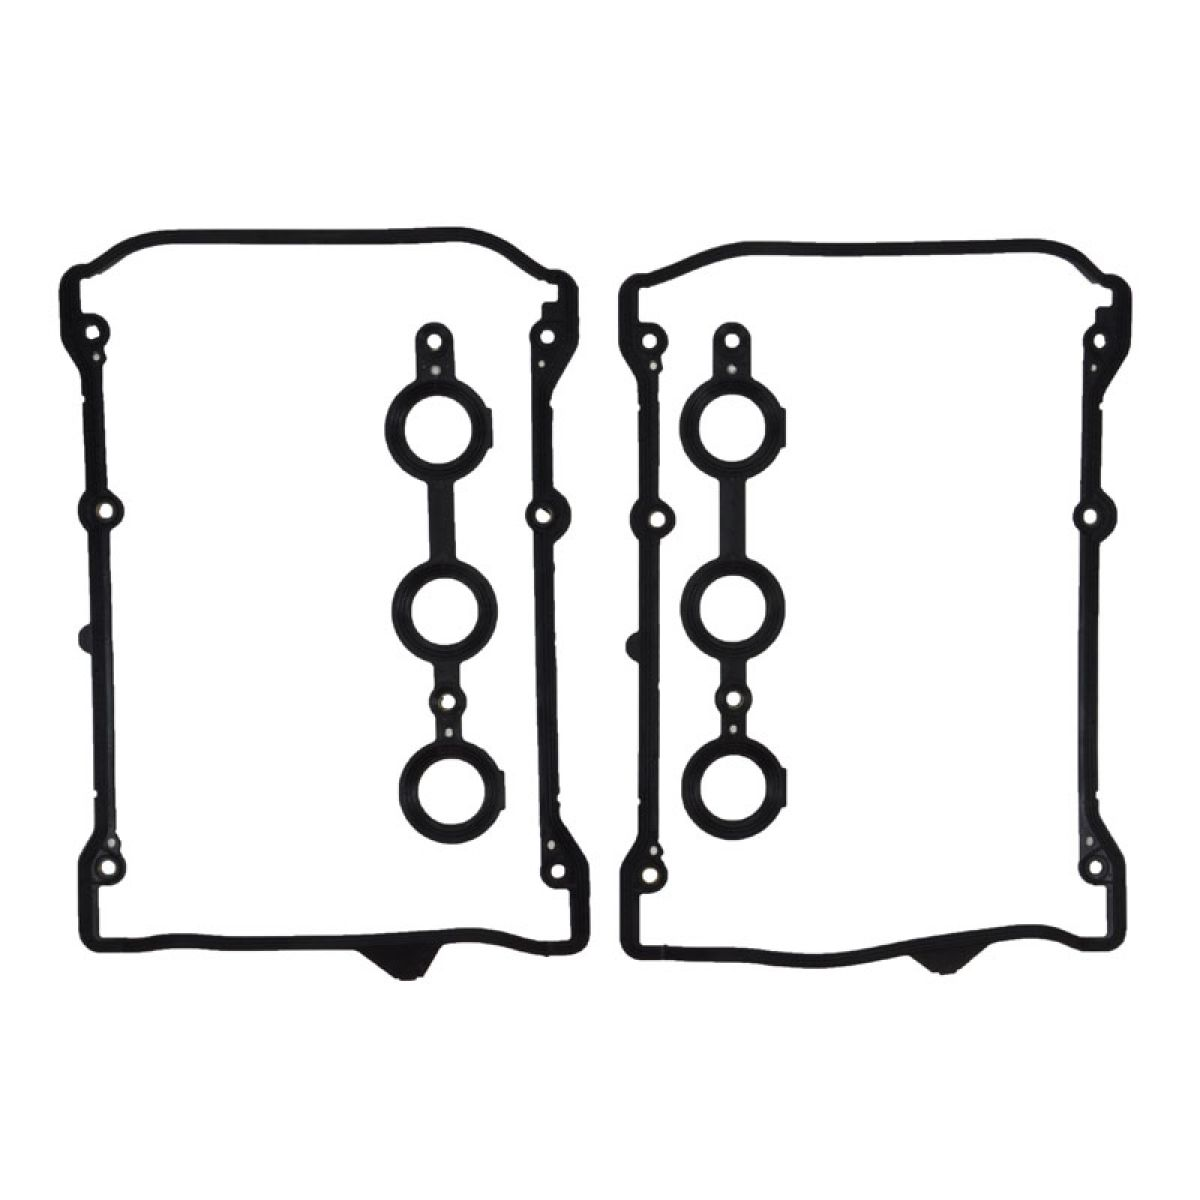 Valve Cover Gasket Set w/ Spark Plug Tube Seals for Audi